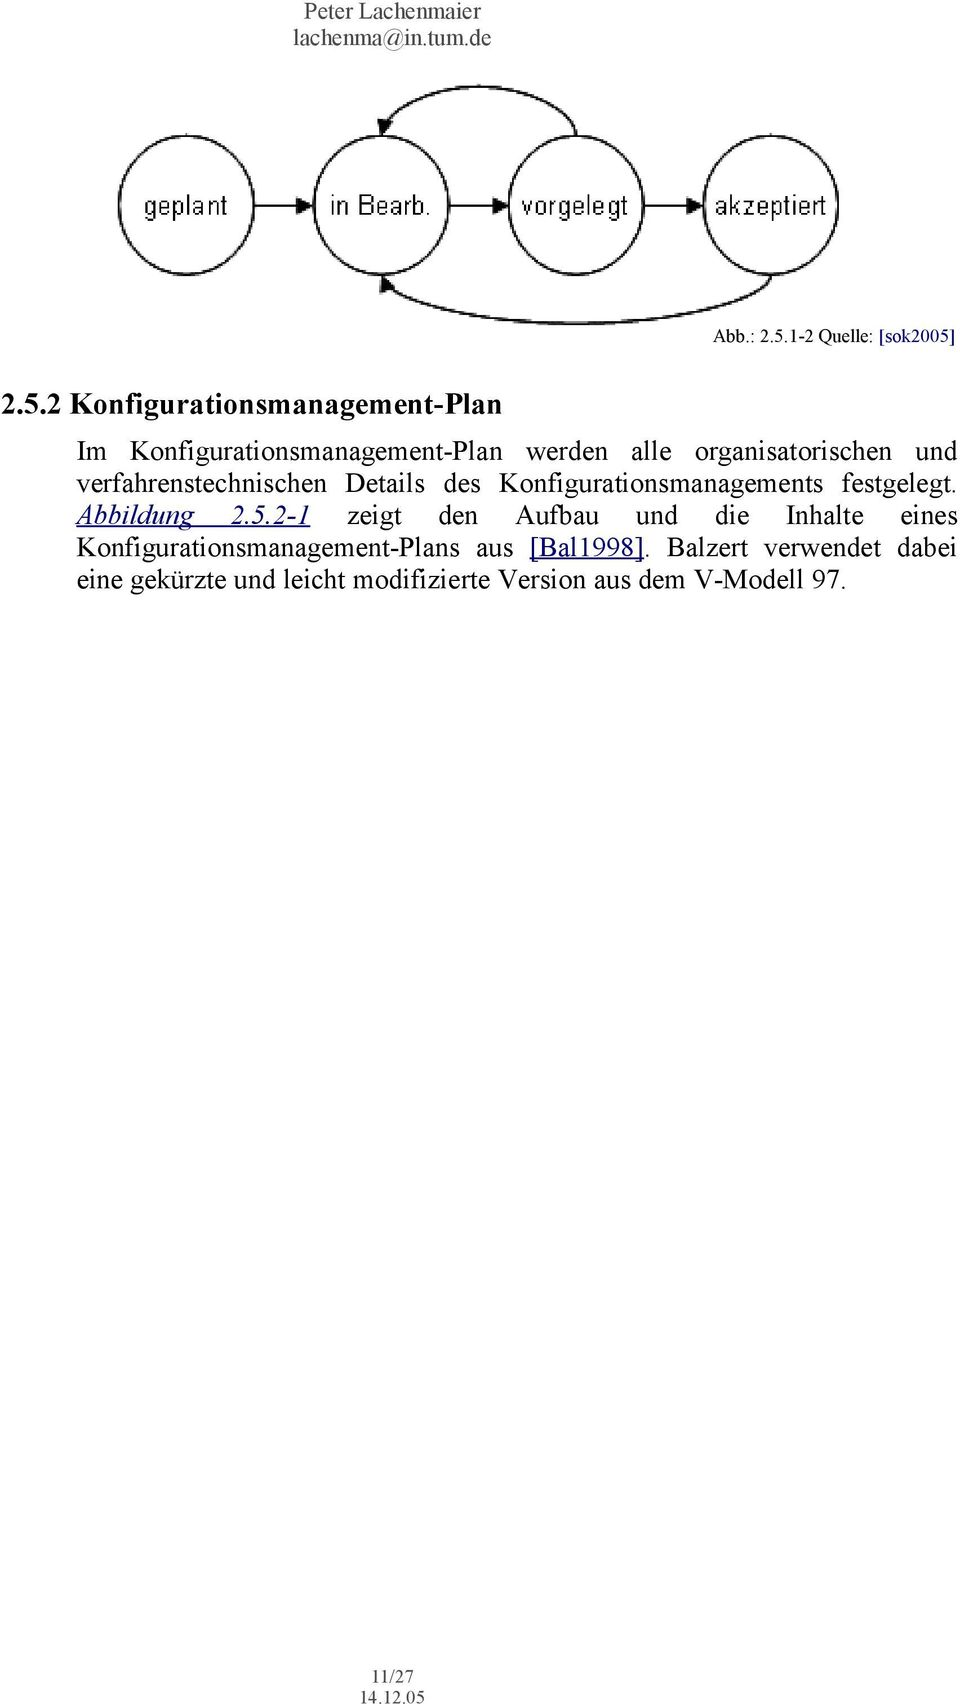 2.5.2 Konfigurationsmanagement-Plan Im Konfigurationsmanagement-Plan werden alle organisatorischen